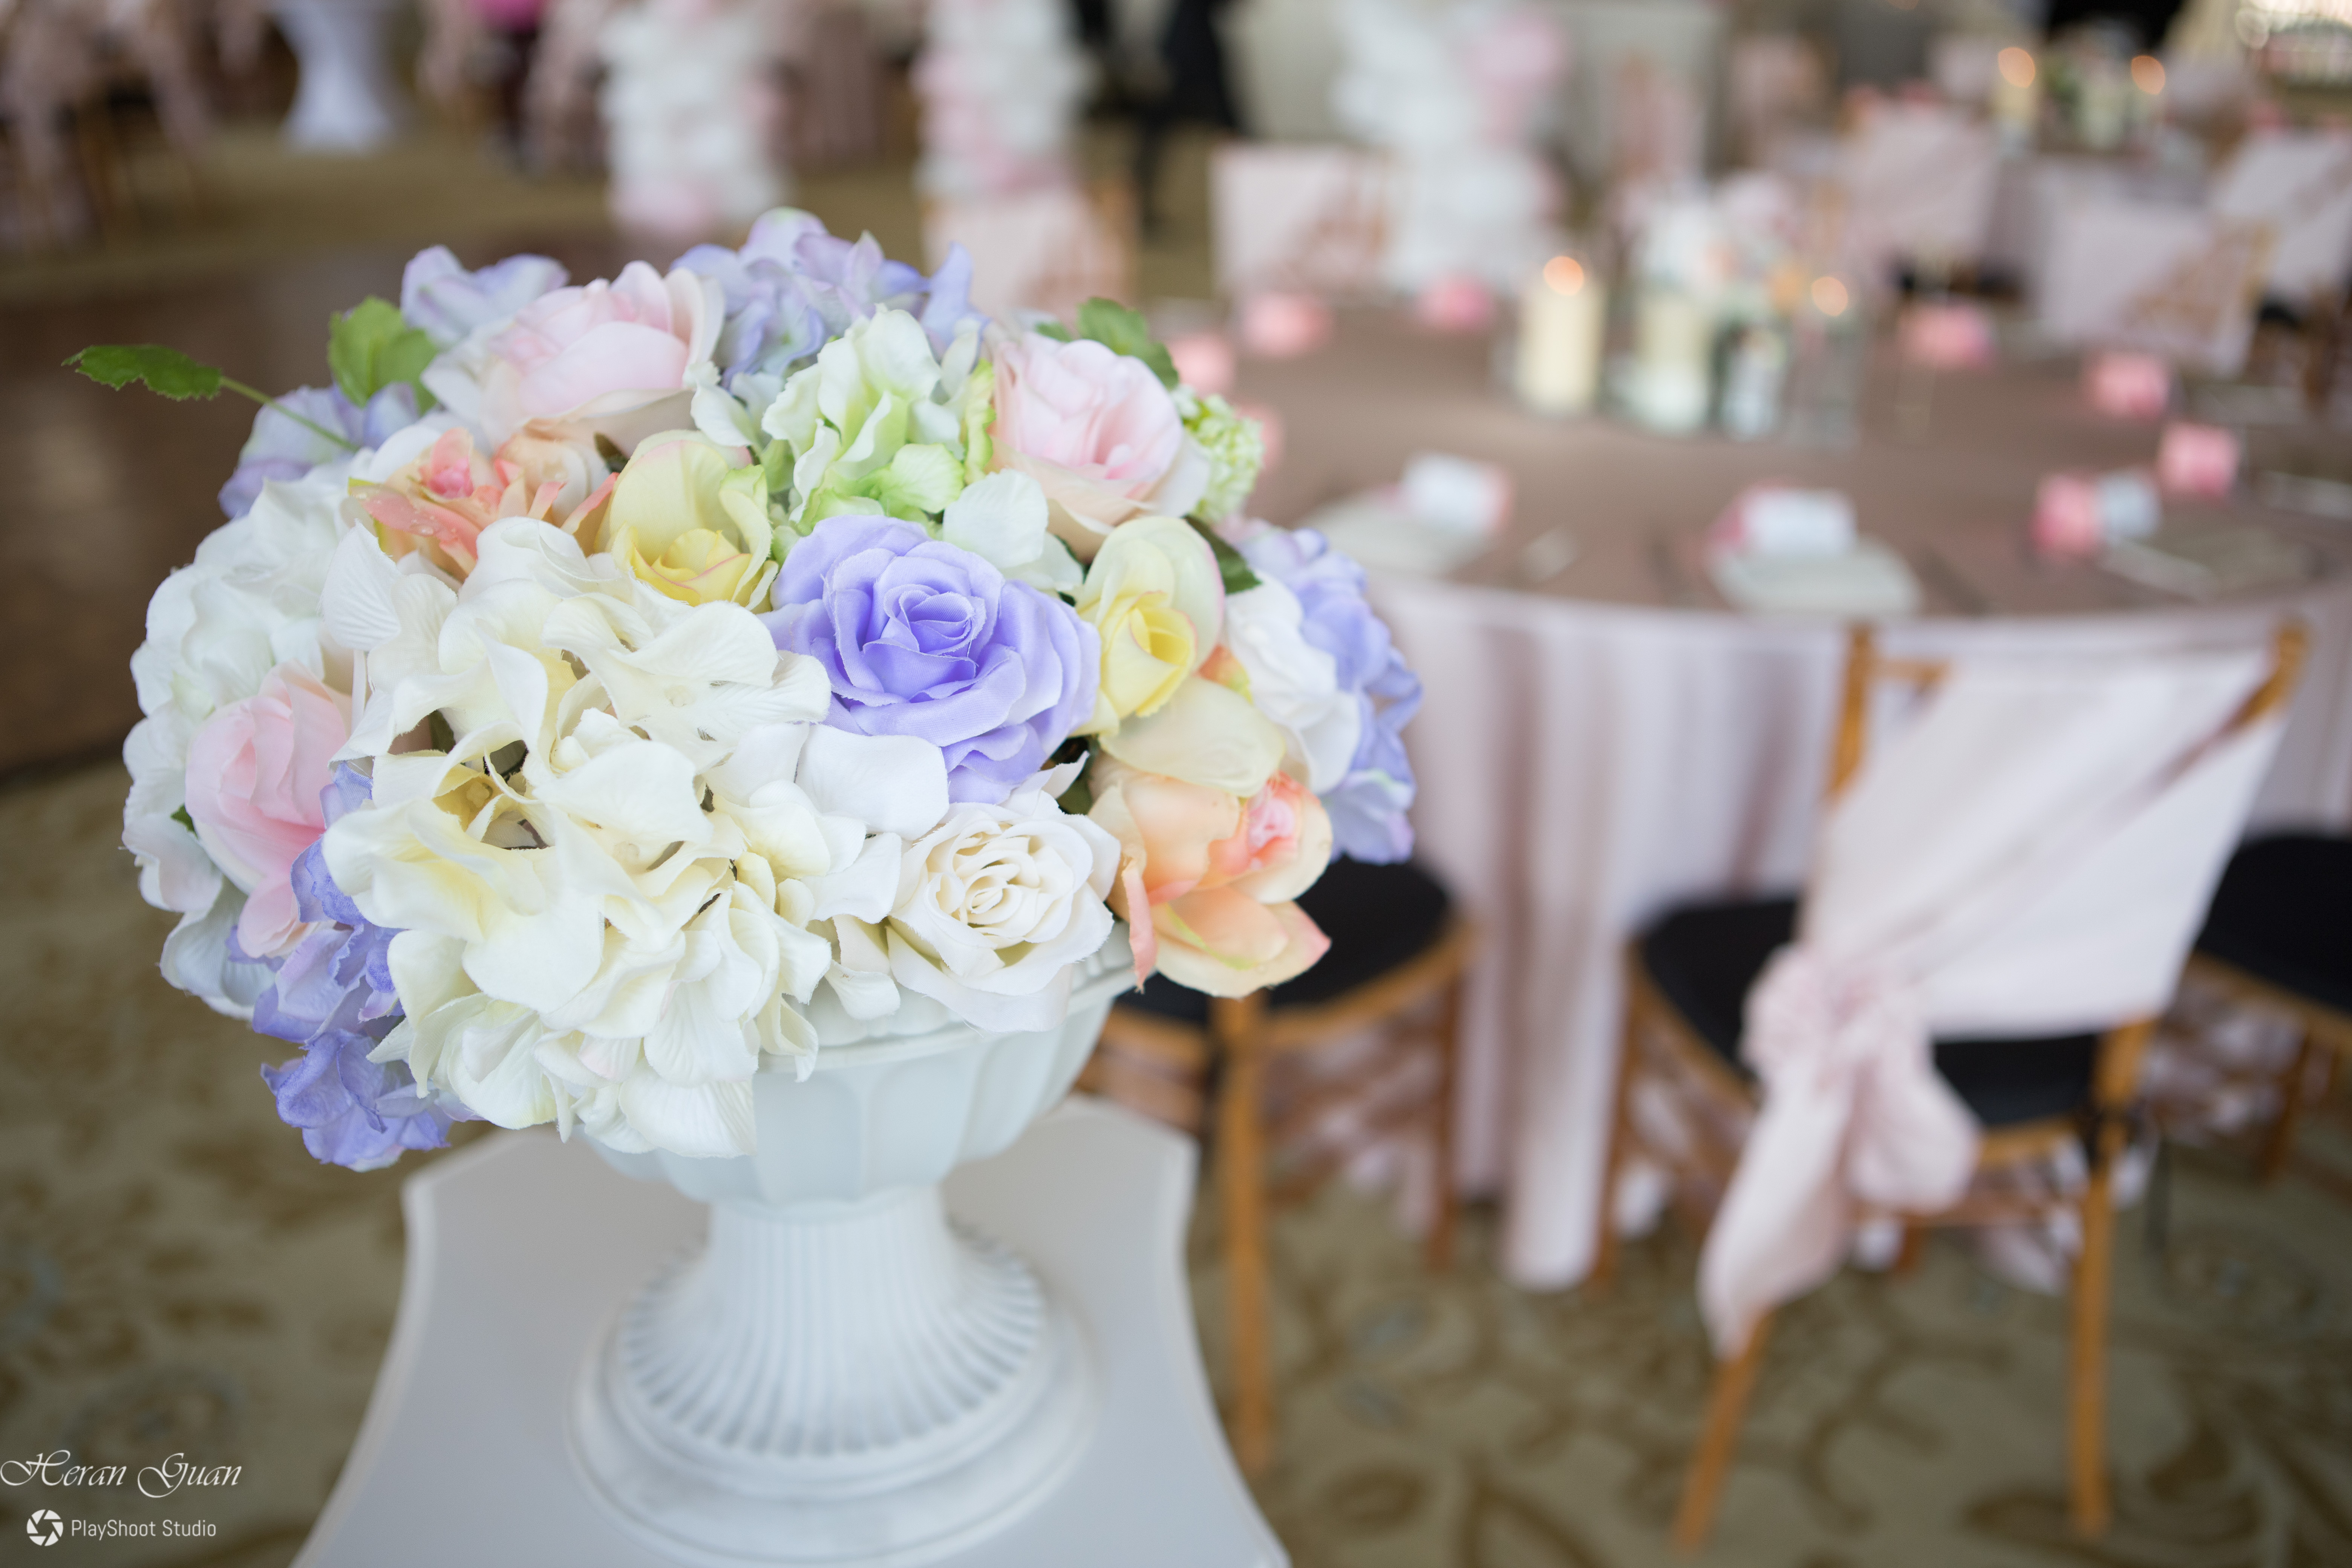 wedding decoration rentals houston texas|wedding decoration store in houston|wedding decorators hous